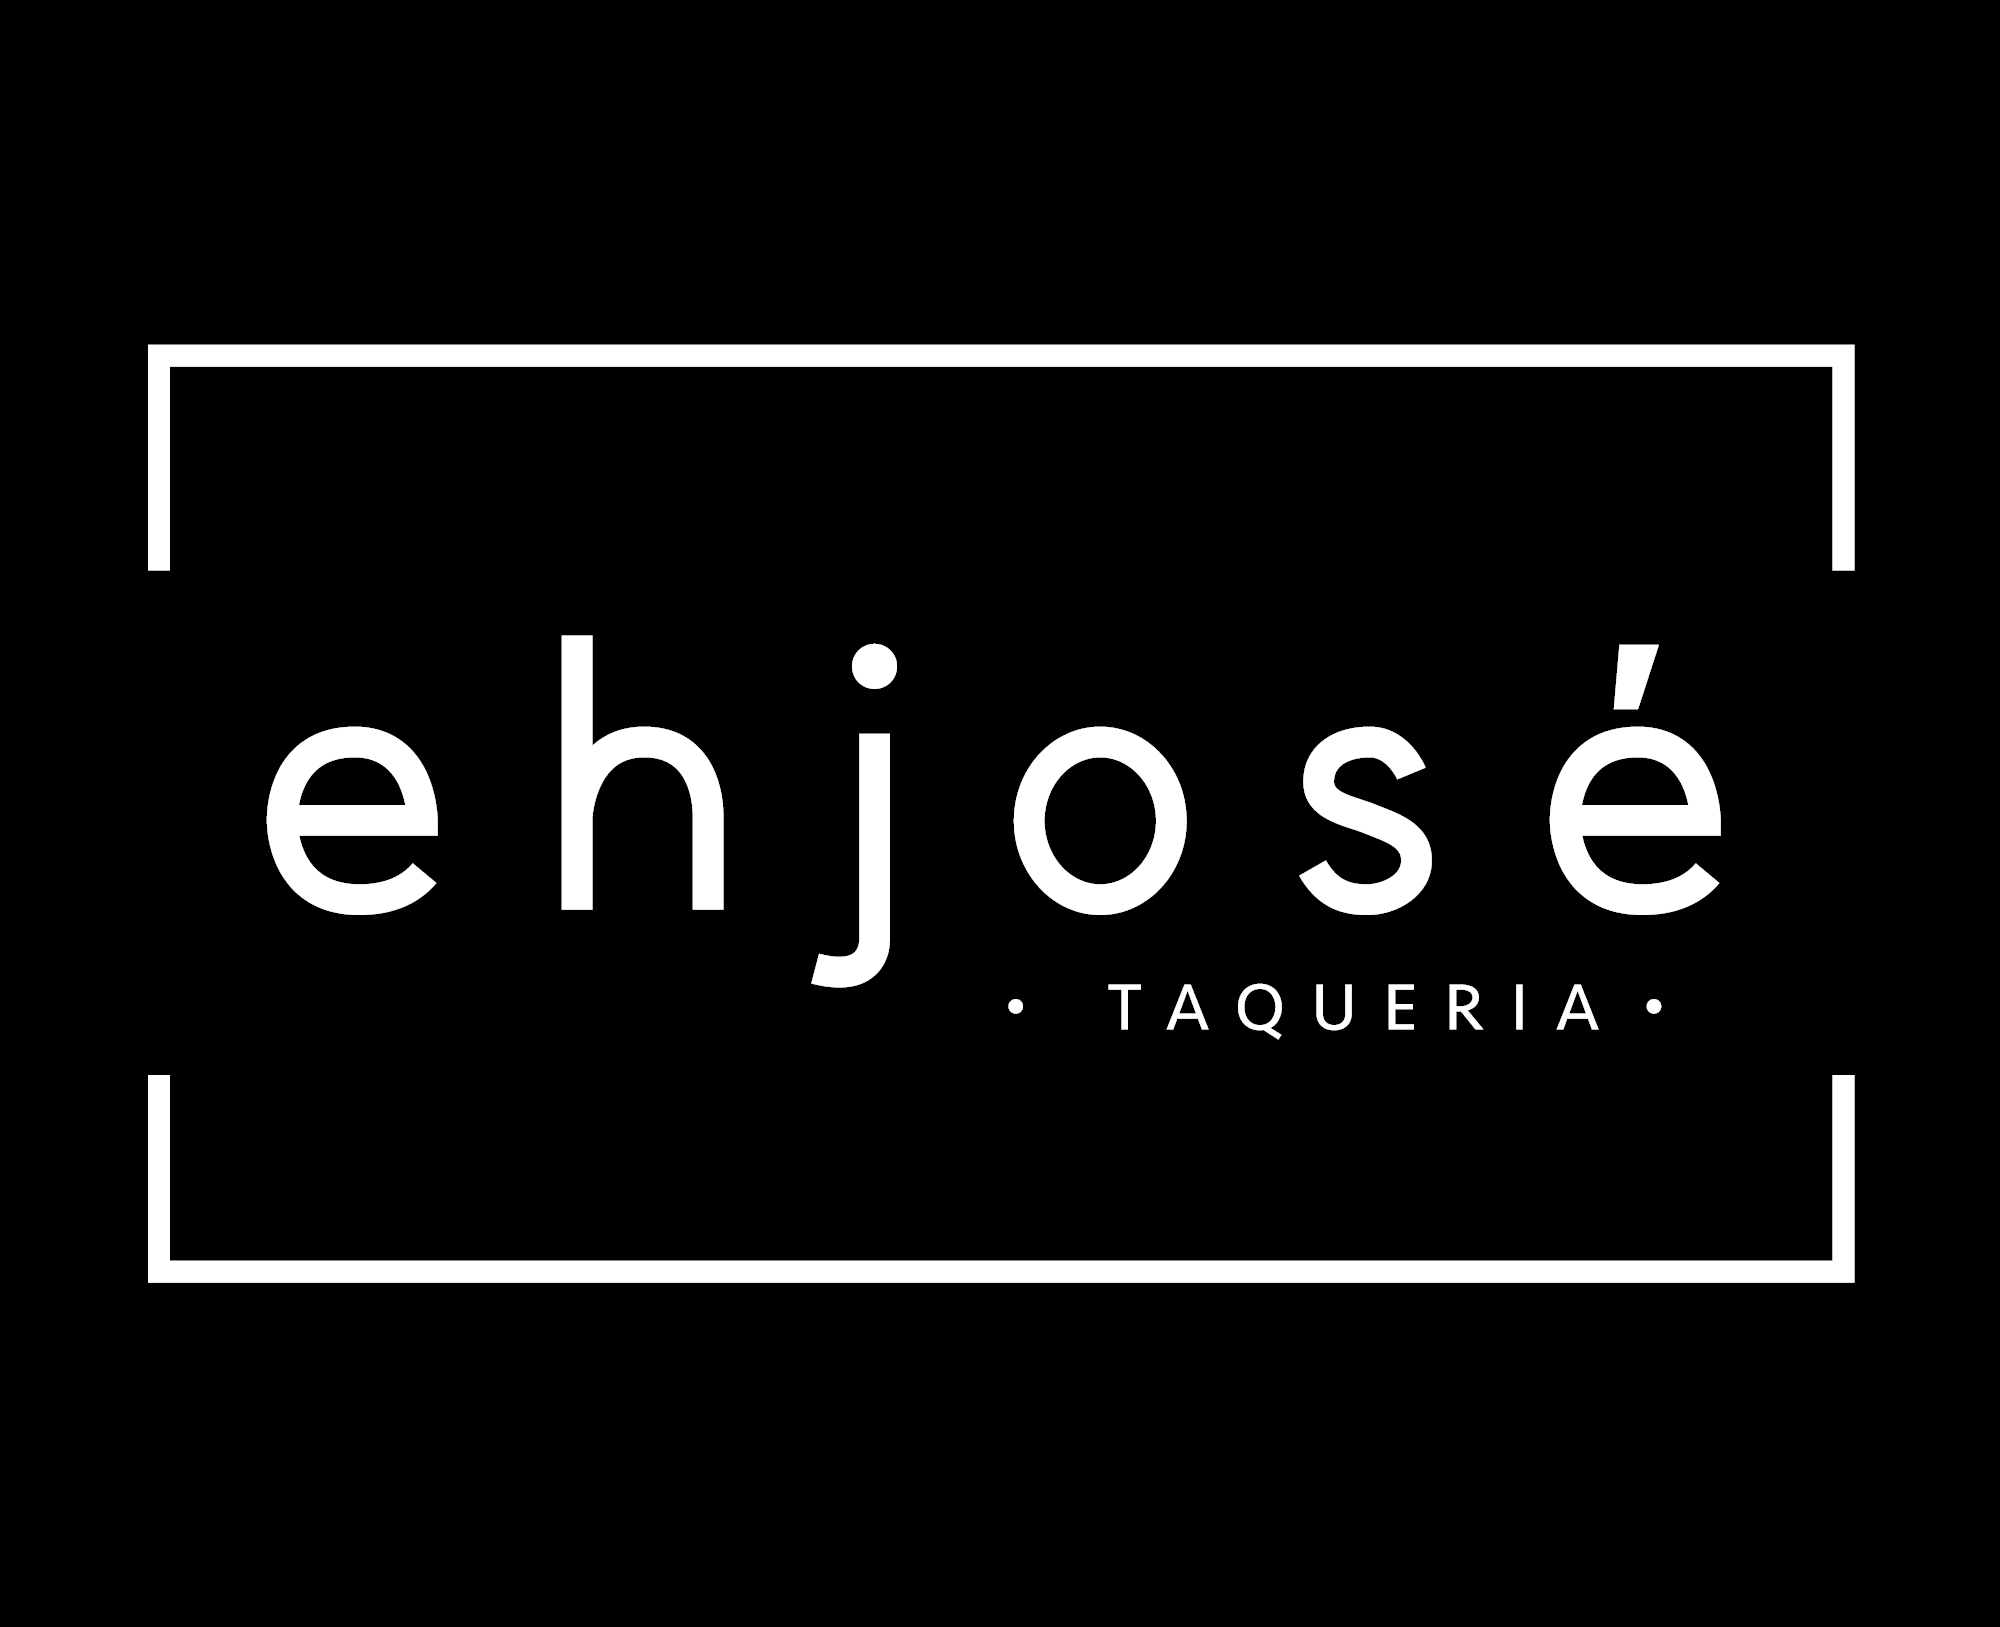 Eh Jose Taqueria St. Catharines